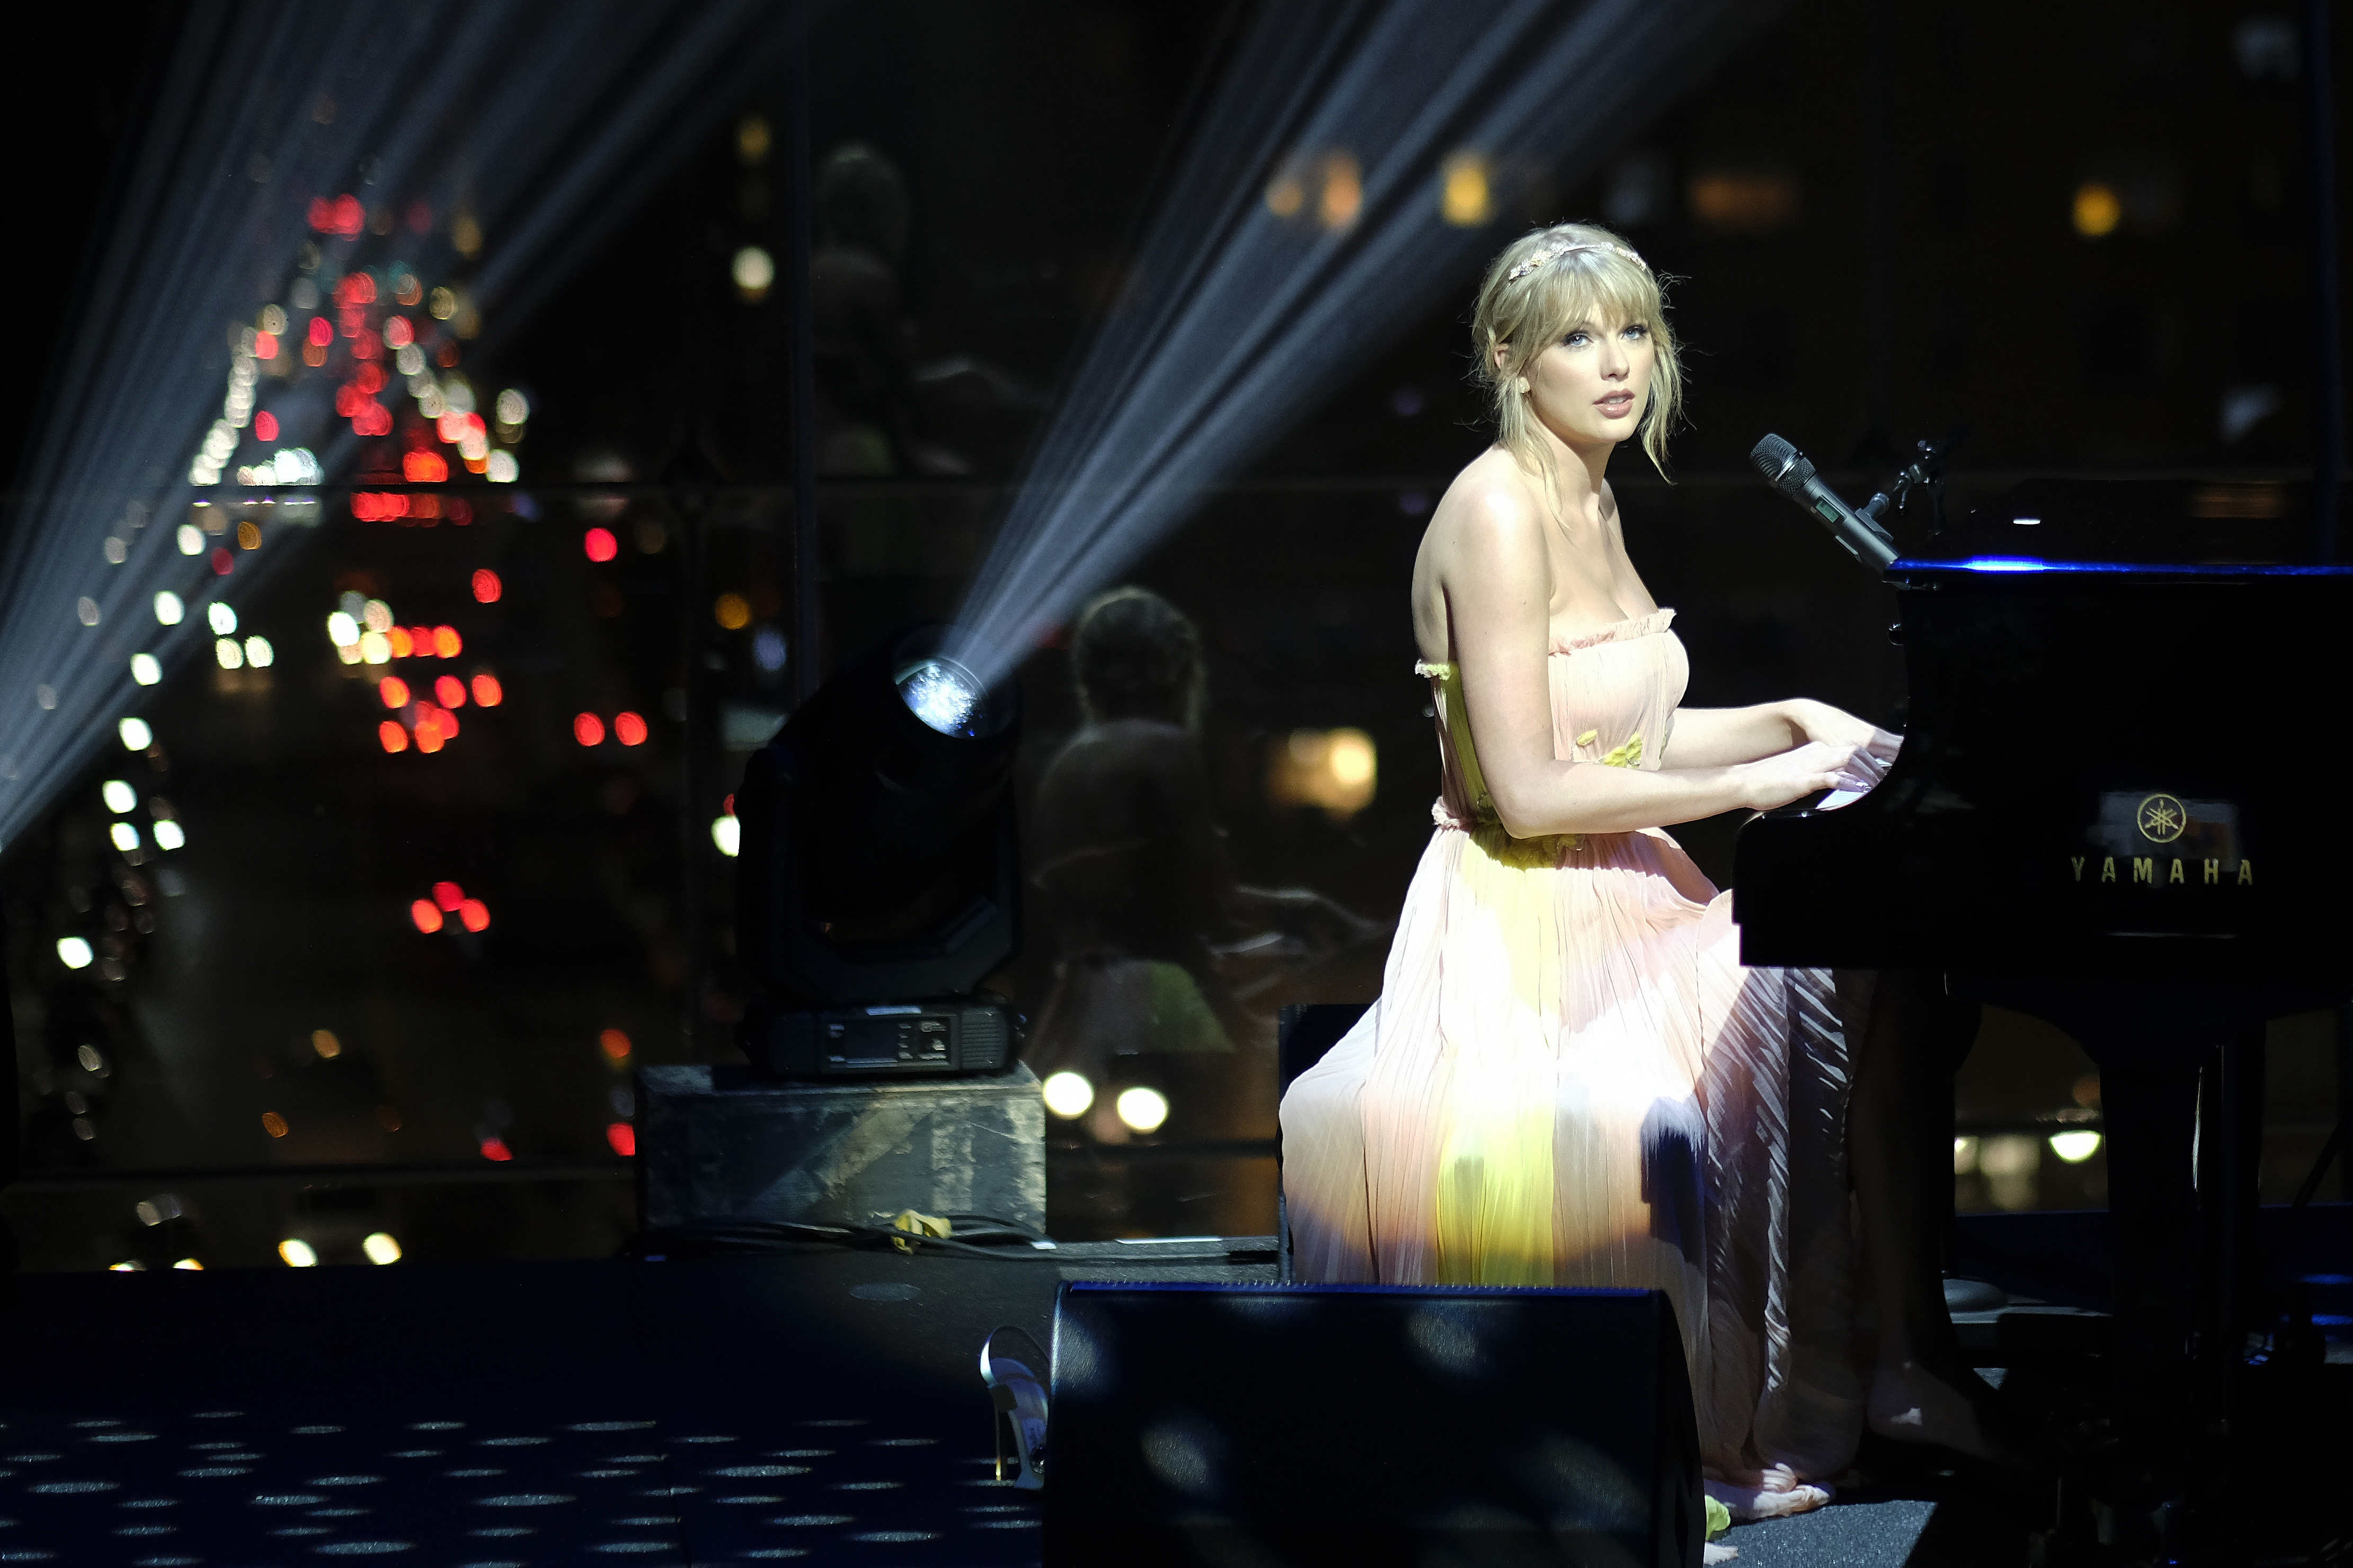 Taylor Swift performs during the TIME 100 Gala 2019 Dinner at Jazz at Lincoln Center on April 23, 2019 in New York City. (Photo by Dimitrios Kambouris/Getty Images for TIME)